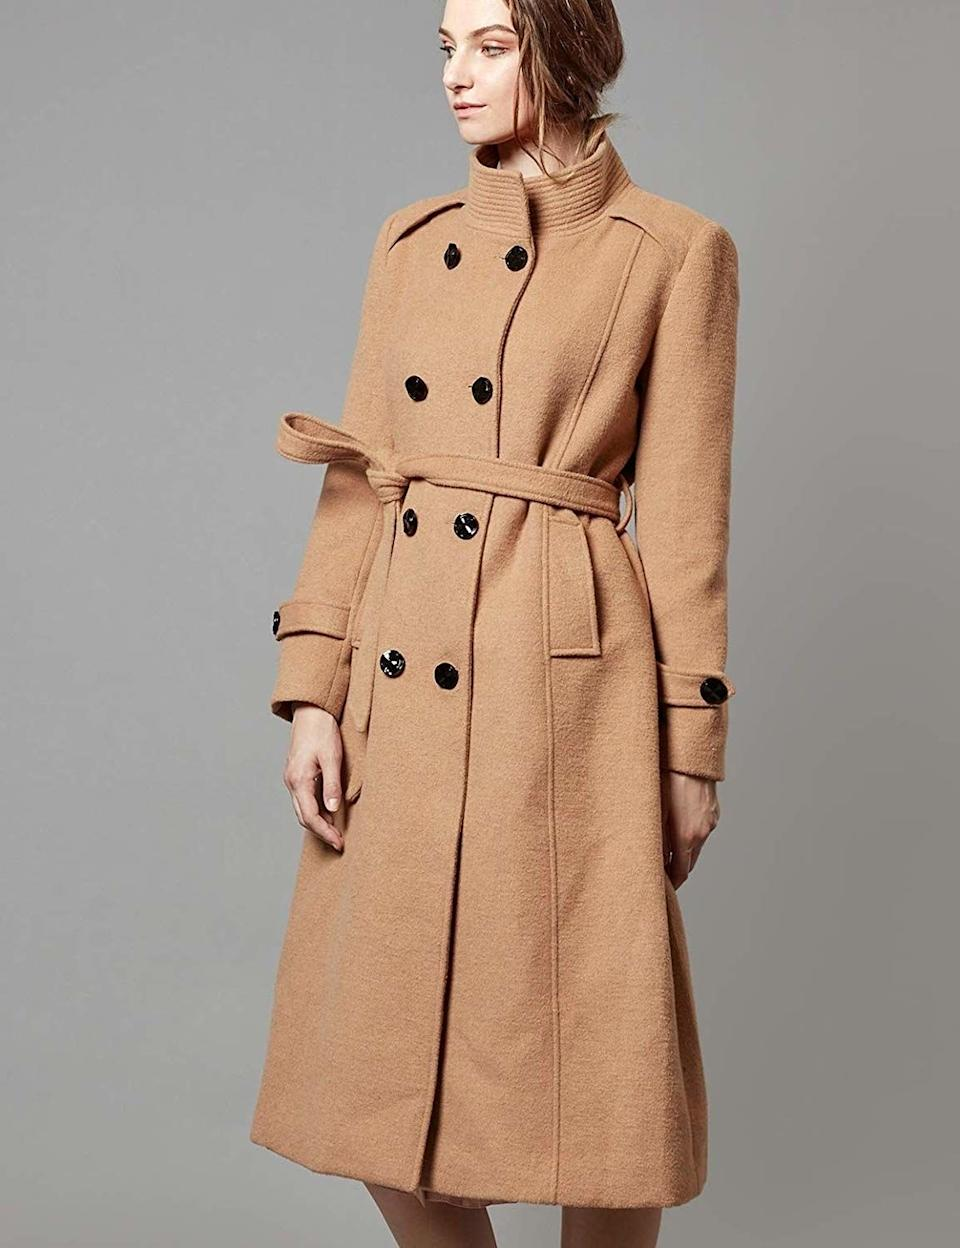 """With a classic look, tie waist and natural color, you'll wear this coat for years. Plus, it's made with 50% wool to keep you warm but not looking like a marshmallow.<br /><br /><strong>Promising review:</strong>""""This jacket is beautiful — the color is great, the fit is great. Most importantly, this jacket is warm. I live in the Midwest, so cute jackets are fine, but I need something that's going to stand up to a Midwestern winter, and this one does. I ordered a large. I could have gotten a medium, but the large gives me room for thicker sweaters. 10/10 would order again."""" —<a href=""""https://amzn.to/2OTe162"""" target=""""_blank"""" rel=""""nofollow noopener noreferrer"""" data-skimlinks-tracking=""""5753950"""" data-vars-affiliate=""""Amazon"""" data-vars-href=""""https://www.amazon.com/gp/customer-reviews/R1FLQEZNIMHZSP?tag=bfabby-20&ascsubtag=5753950%2C10%2C30%2Cmobile_web%2C0%2C0%2C0"""" data-vars-keywords=""""cleaning,fast fashion"""" data-vars-link-id=""""0"""" data-vars-price="""""""" data-vars-retailers=""""Amazon"""">Andrea</a><br /><br /><strong>Get it from Amazon for<a href=""""https://amzn.to/3goh6Gu"""" target=""""_blank"""" rel=""""nofollow noopener noreferrer"""" data-skimlinks-tracking=""""5753950"""" data-vars-affiliate=""""Amazon"""" data-vars-asin=""""B074W6NCJ5"""" data-vars-href=""""https://www.amazon.com/dp/B074W6NCJ5?tag=bfabby-20&ascsubtag=5753950%2C10%2C30%2Cmobile_web%2C0%2C0%2C15956635"""" data-vars-keywords=""""cleaning,fast fashion"""" data-vars-link-id=""""15956635"""" data-vars-price="""""""" data-vars-product-id=""""18304389"""" data-vars-product-img=""""https://m.media-amazon.com/images/I/41z1G9g27-L.jpg"""" data-vars-product-title=""""Escalier Women's Wool Trench Coat Winter Double-Breasted Jacket with Belts"""" data-vars-retailers=""""Amazon"""">$129.99</a>(available in sizes XS-3X and in three colors).</strong>"""